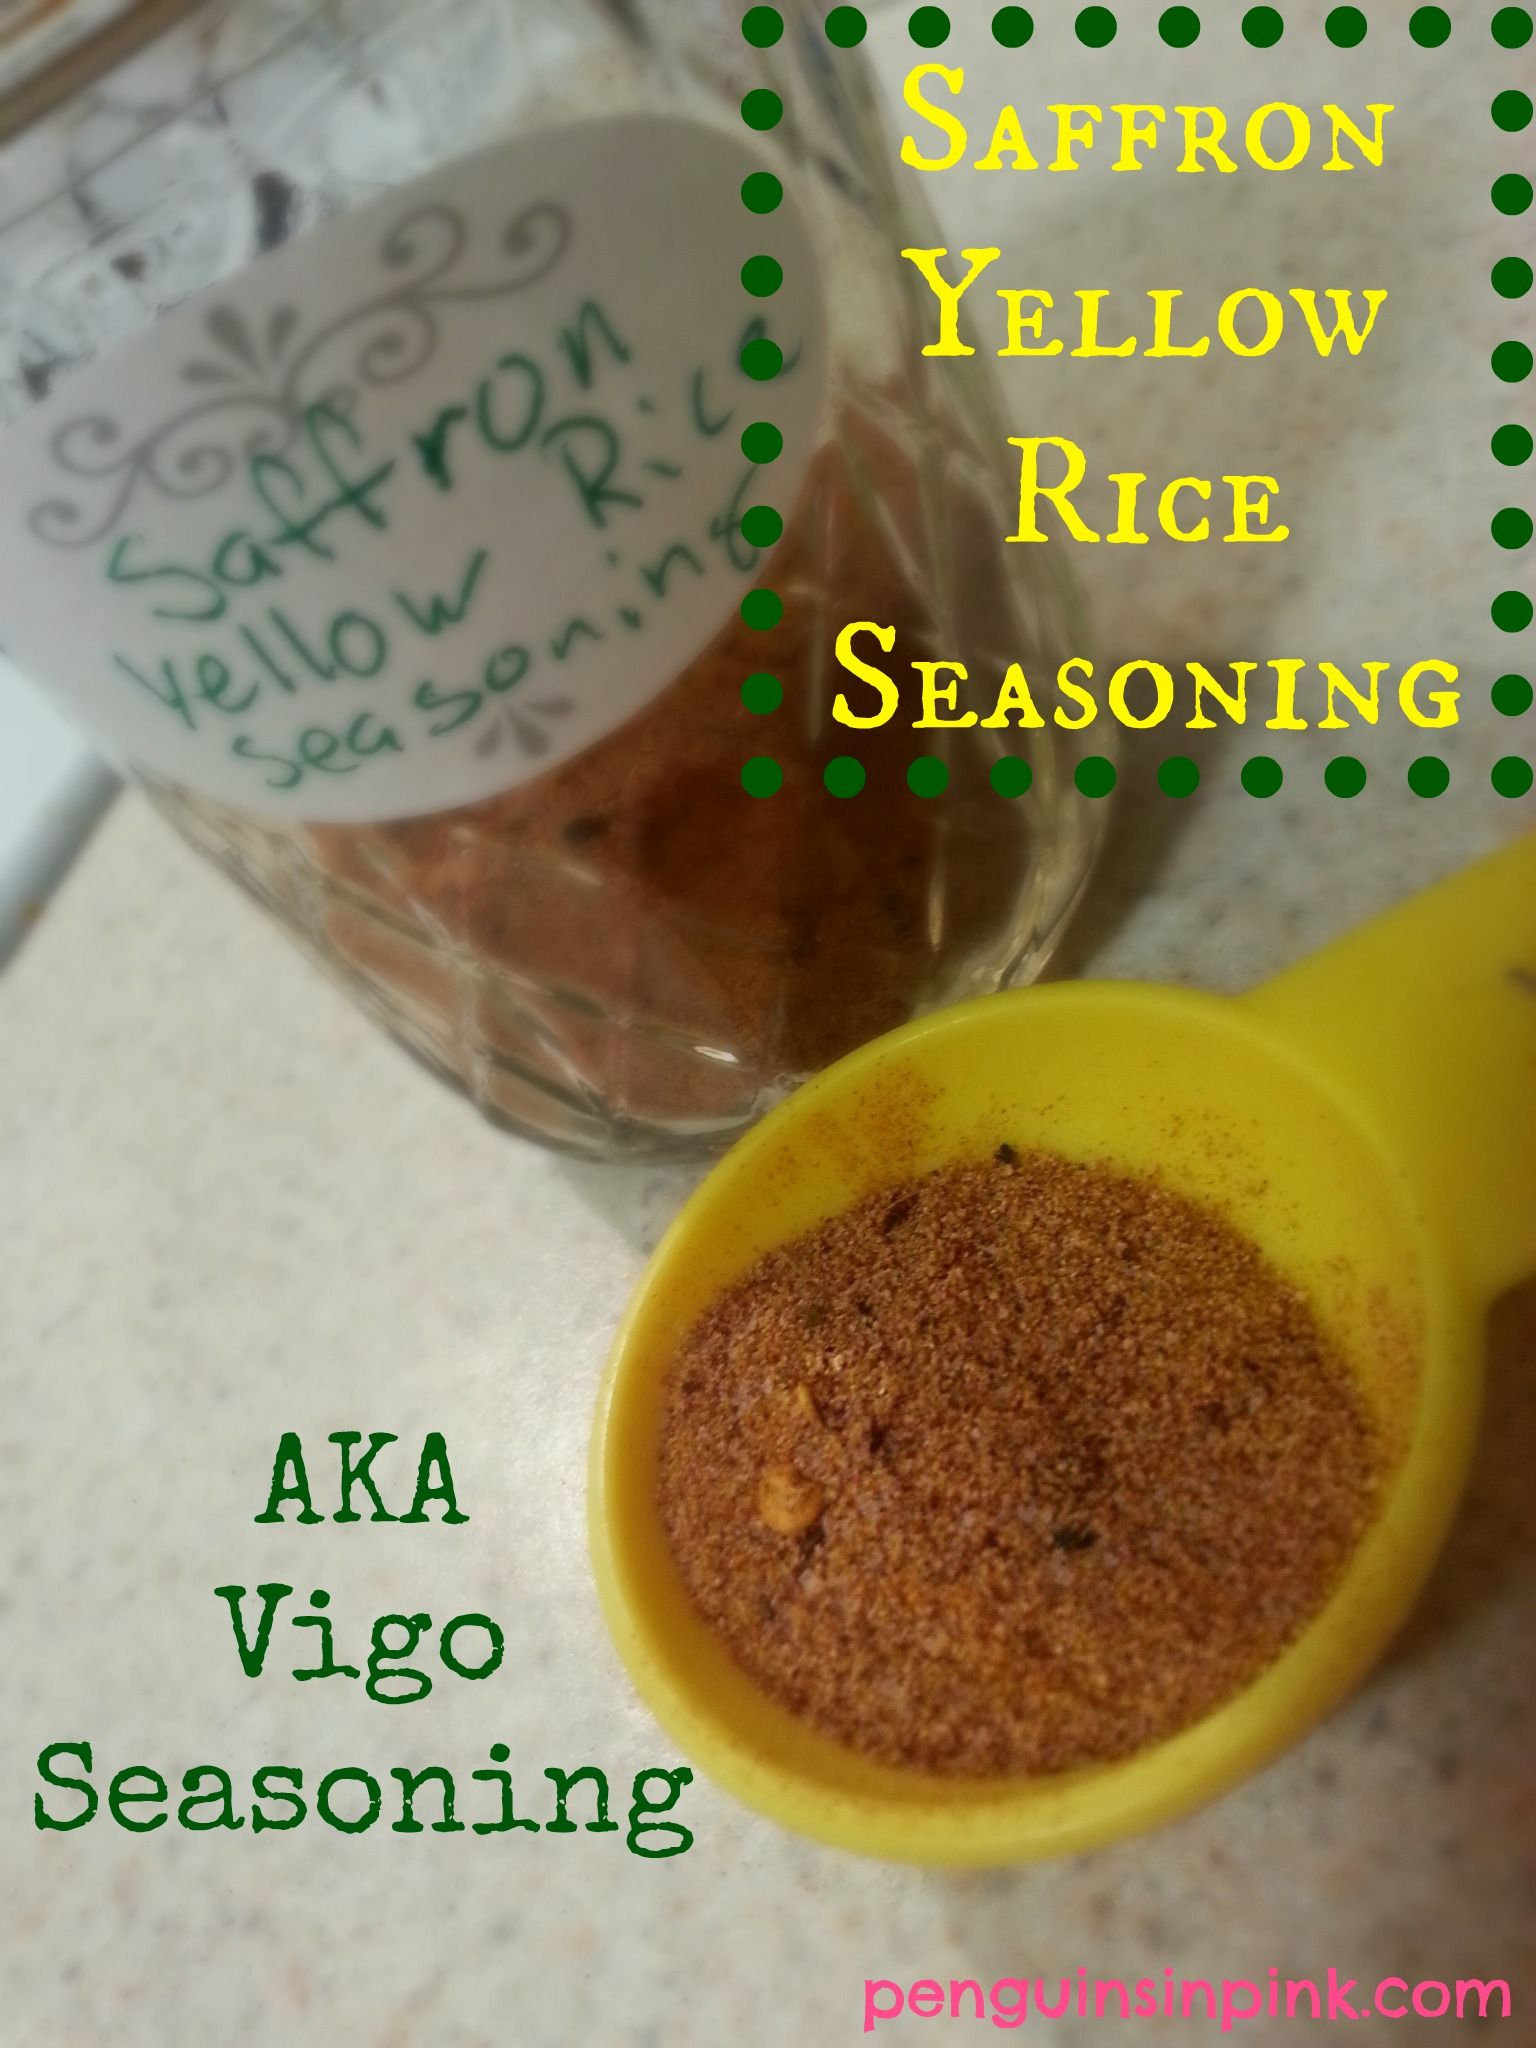 Saffron Yellow Rice Seasoning Aka Vigo Seasoning Seasoning Mixes Seasoned Rice Homemade Seasonings